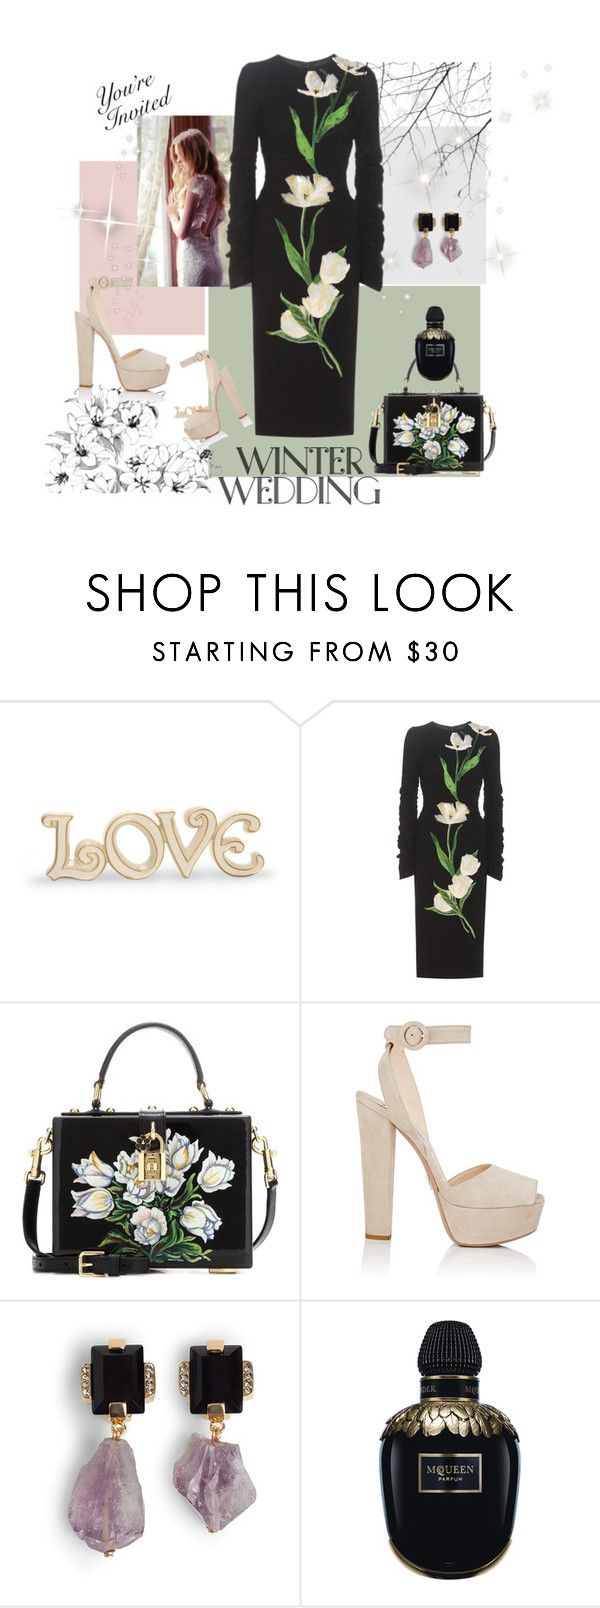 """Untitled #180"" by ohnoflo on Polyvore featuring Lenox, Dolce&Gabbana, Prada, Marni and Alexander McQueen"